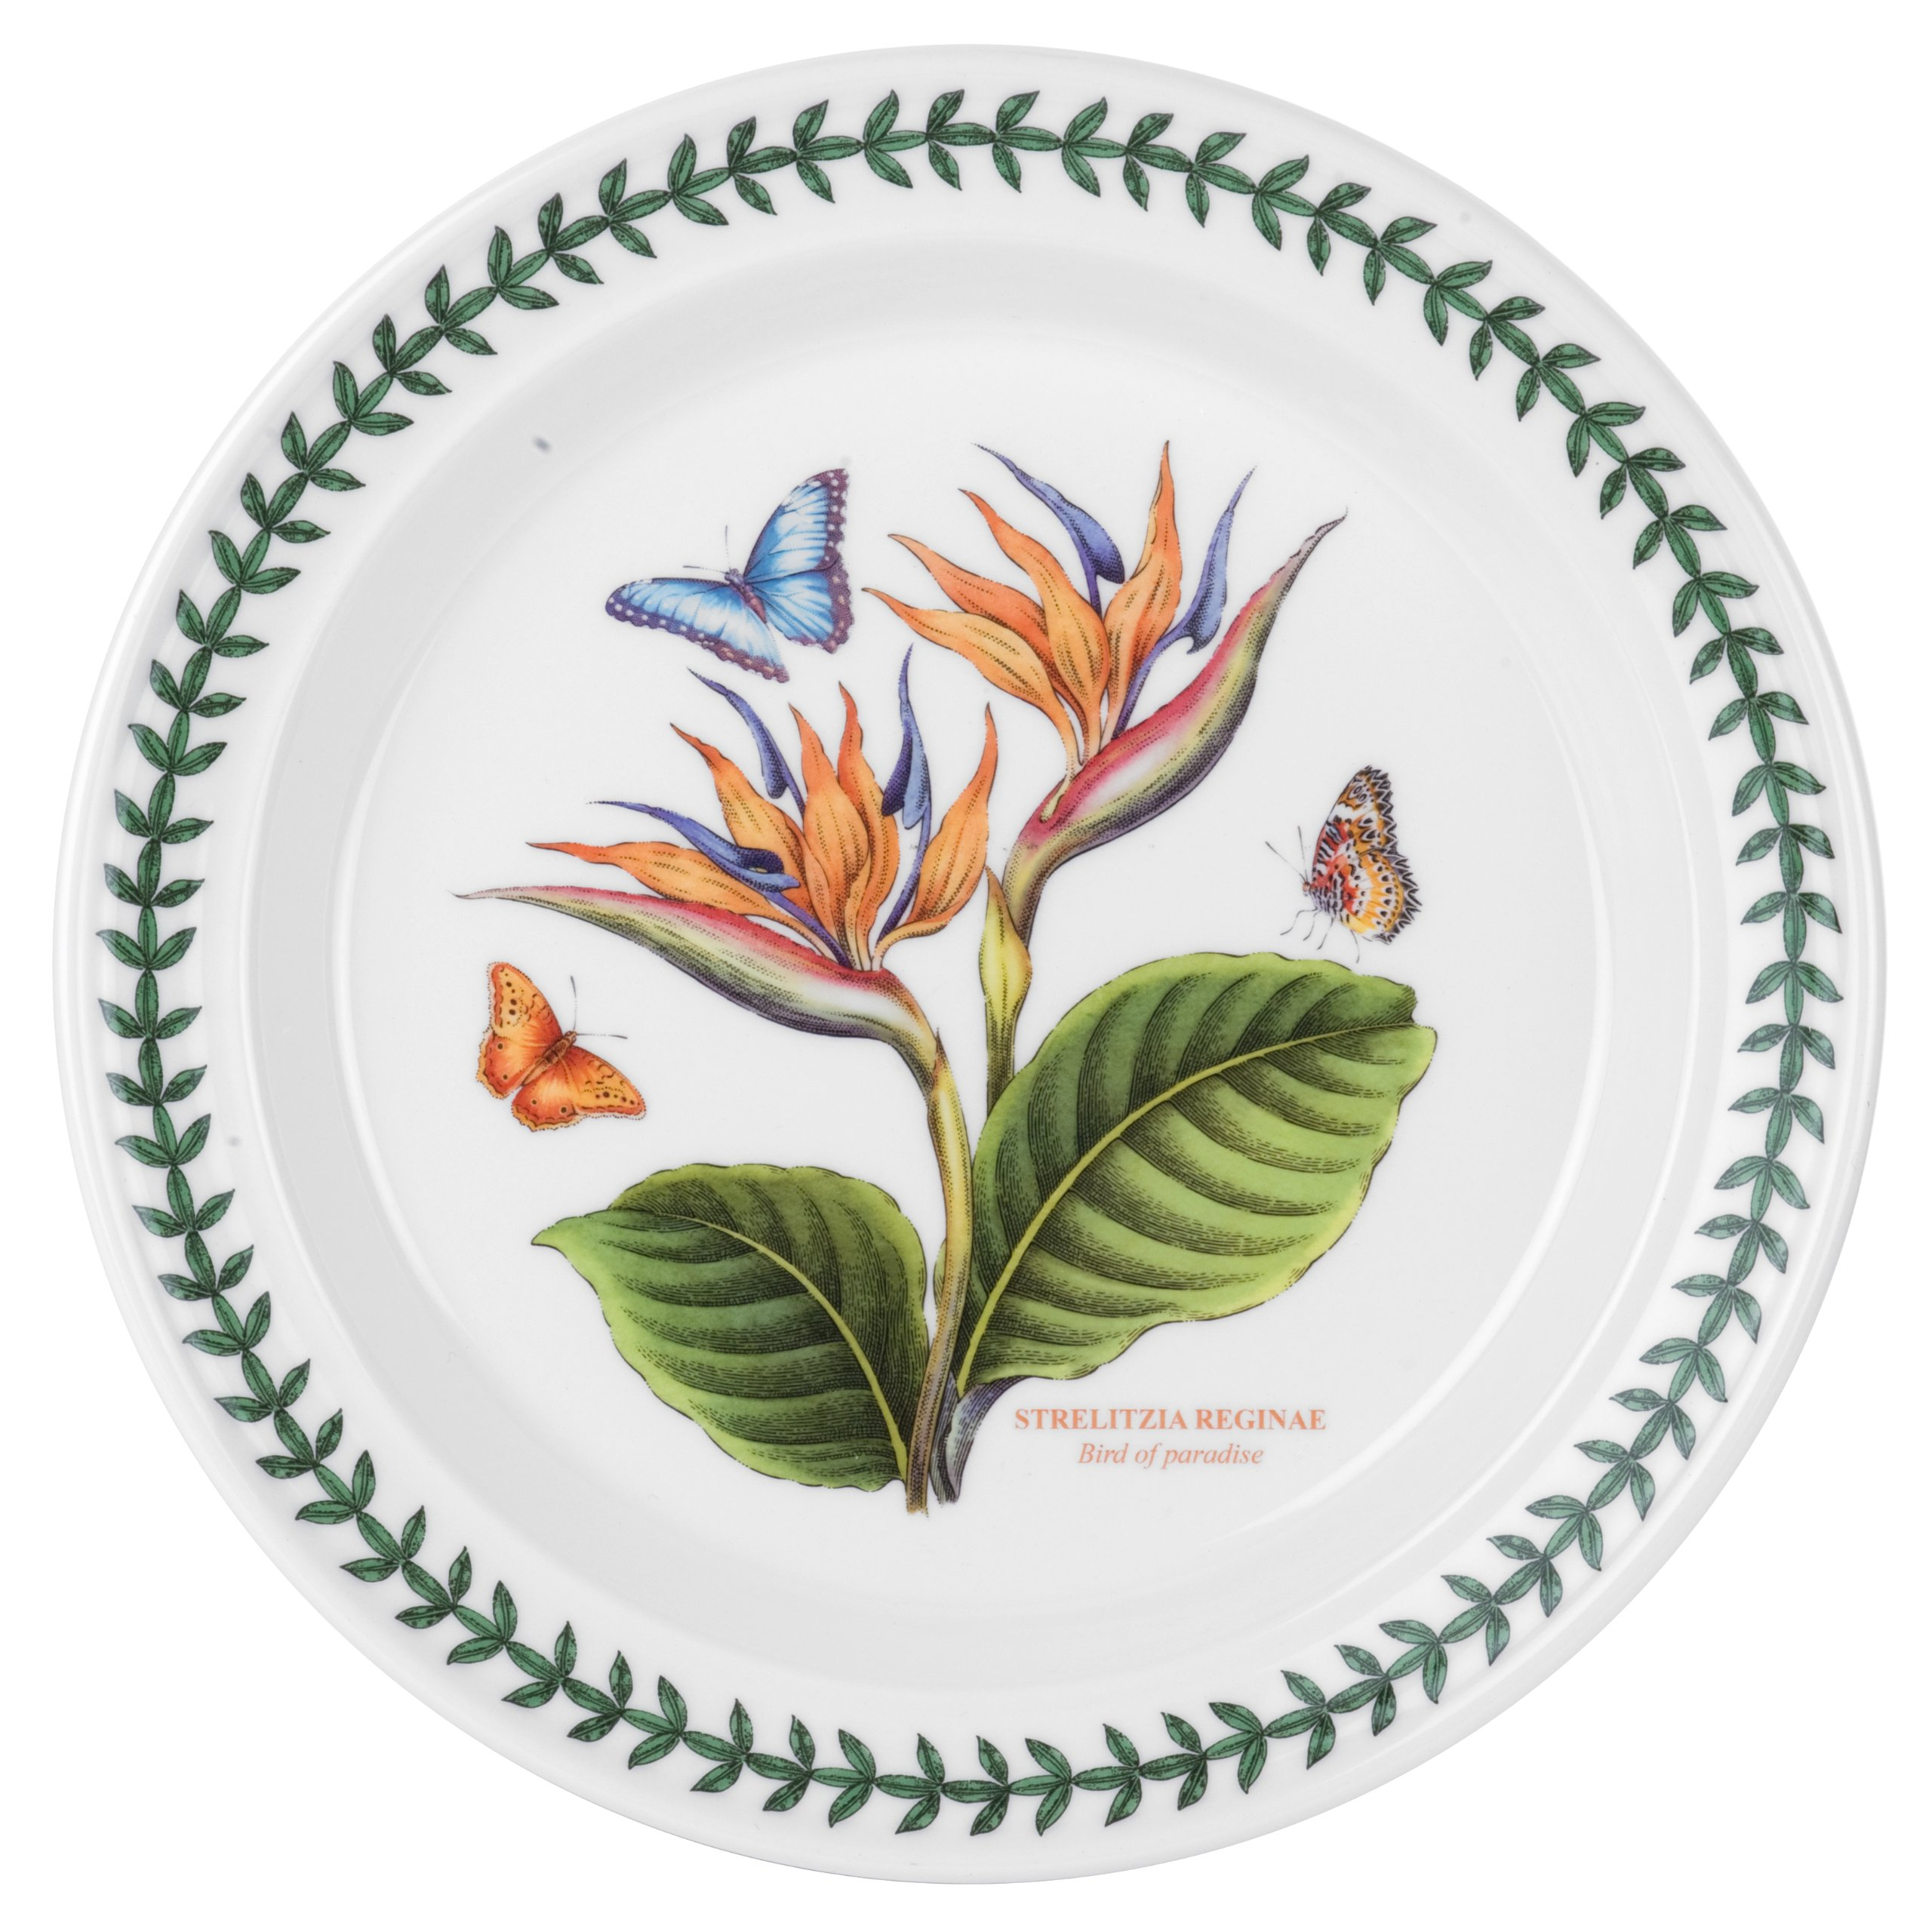 Portmeirion Exotic Botanic Garden Dinner Plate with Bird of Paradise Motif, Set of 6